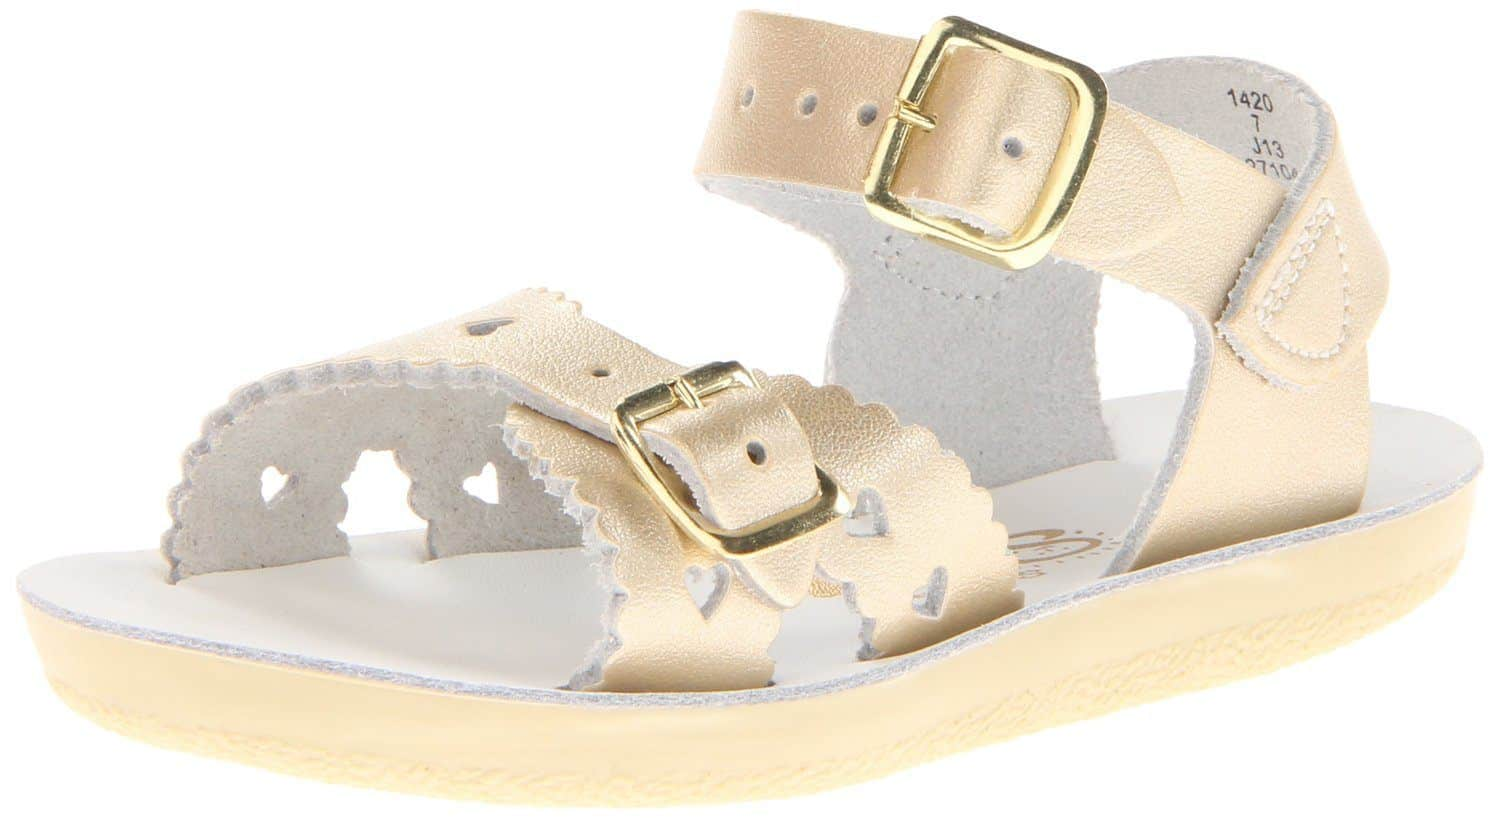 Salt Water Sandals by Hoy Shoe Sweetheart Sandal